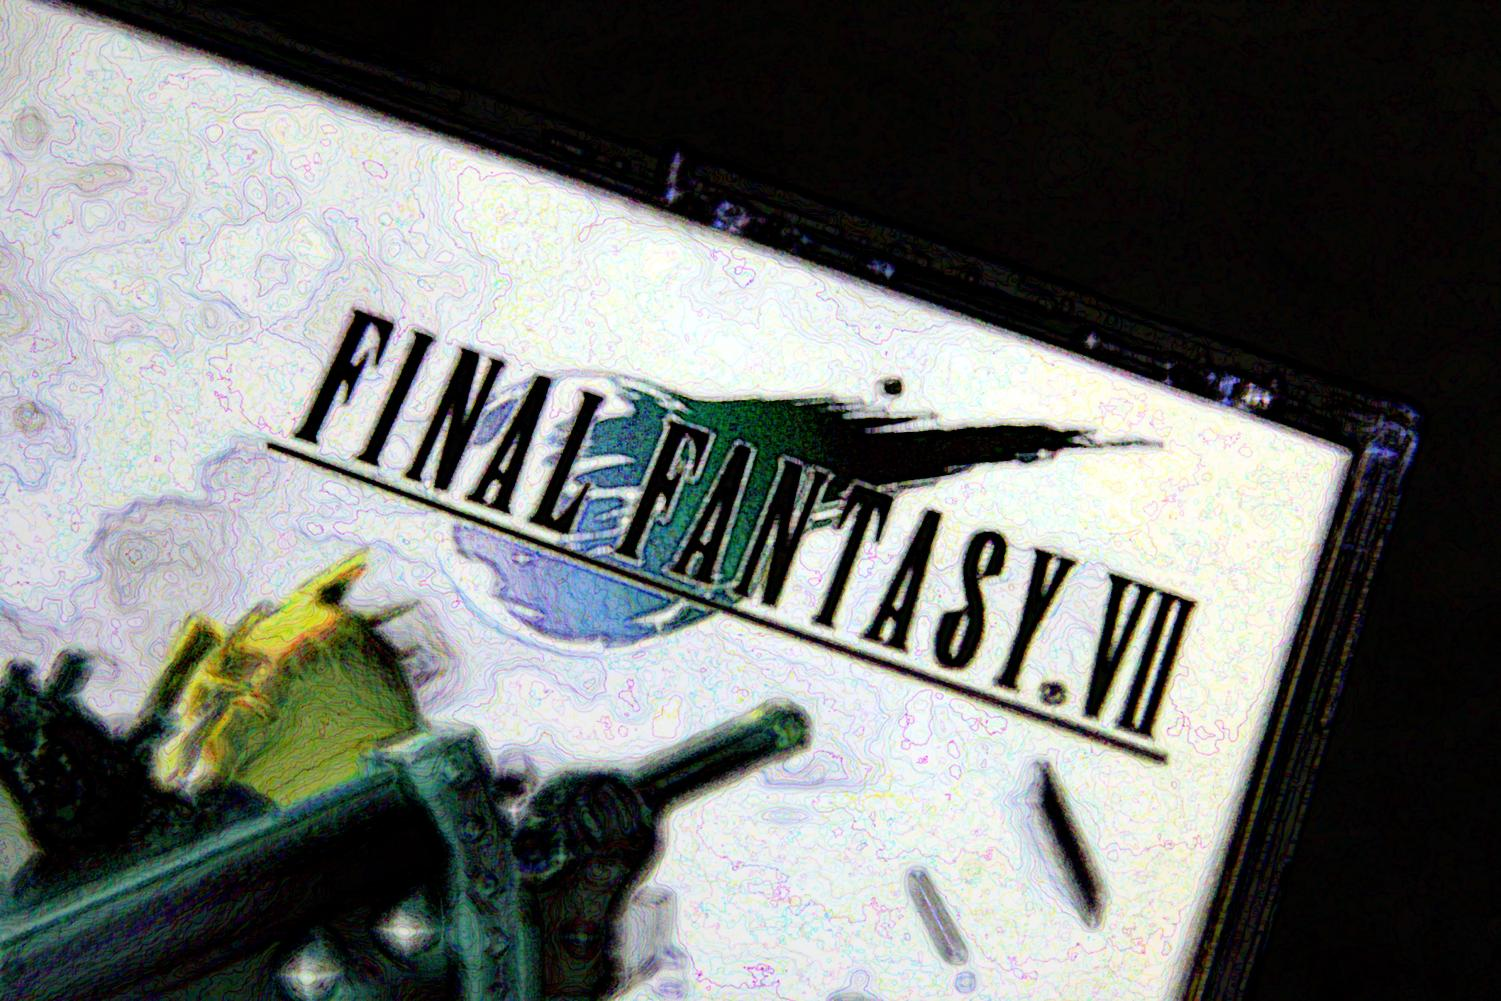 Green is a prominent theme in Final Fantasy VII.